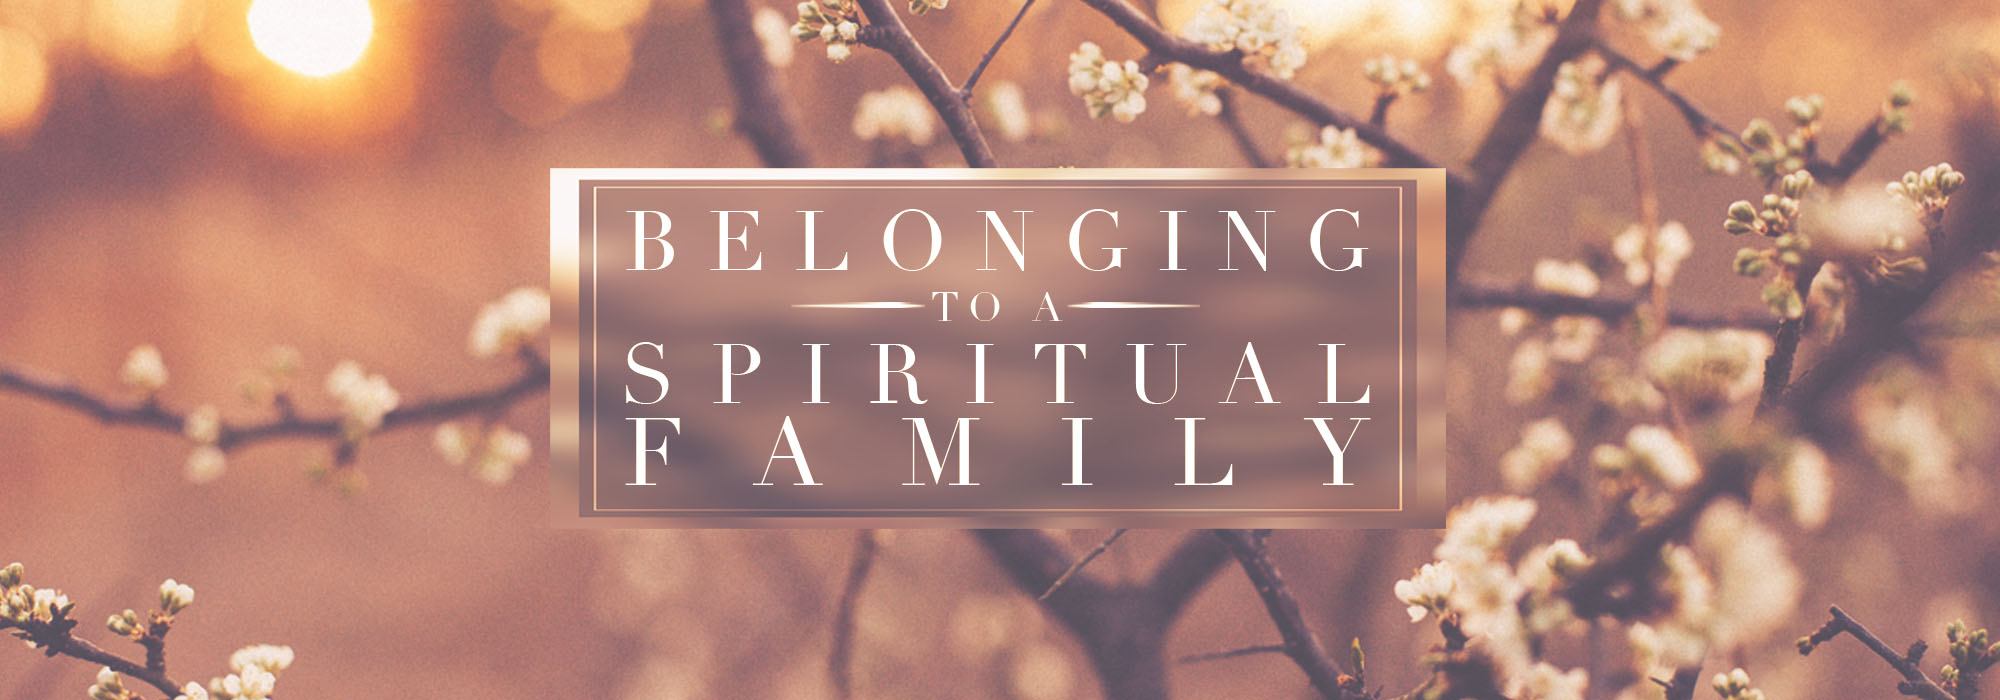 Belonging To A Spiritual Family